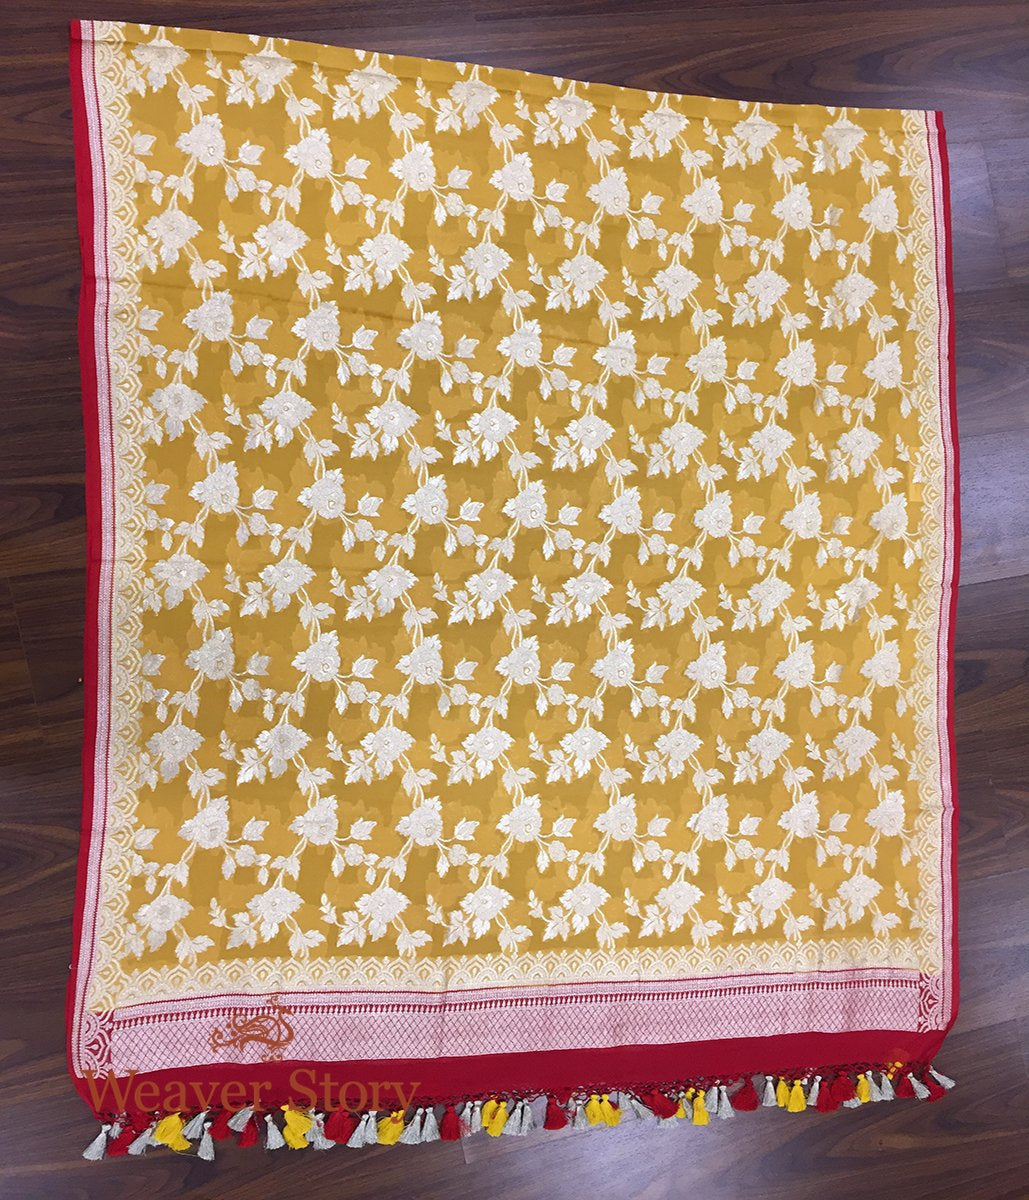 Handwoven Banarasi Georgette Dupatta in Mustard with Red Borders